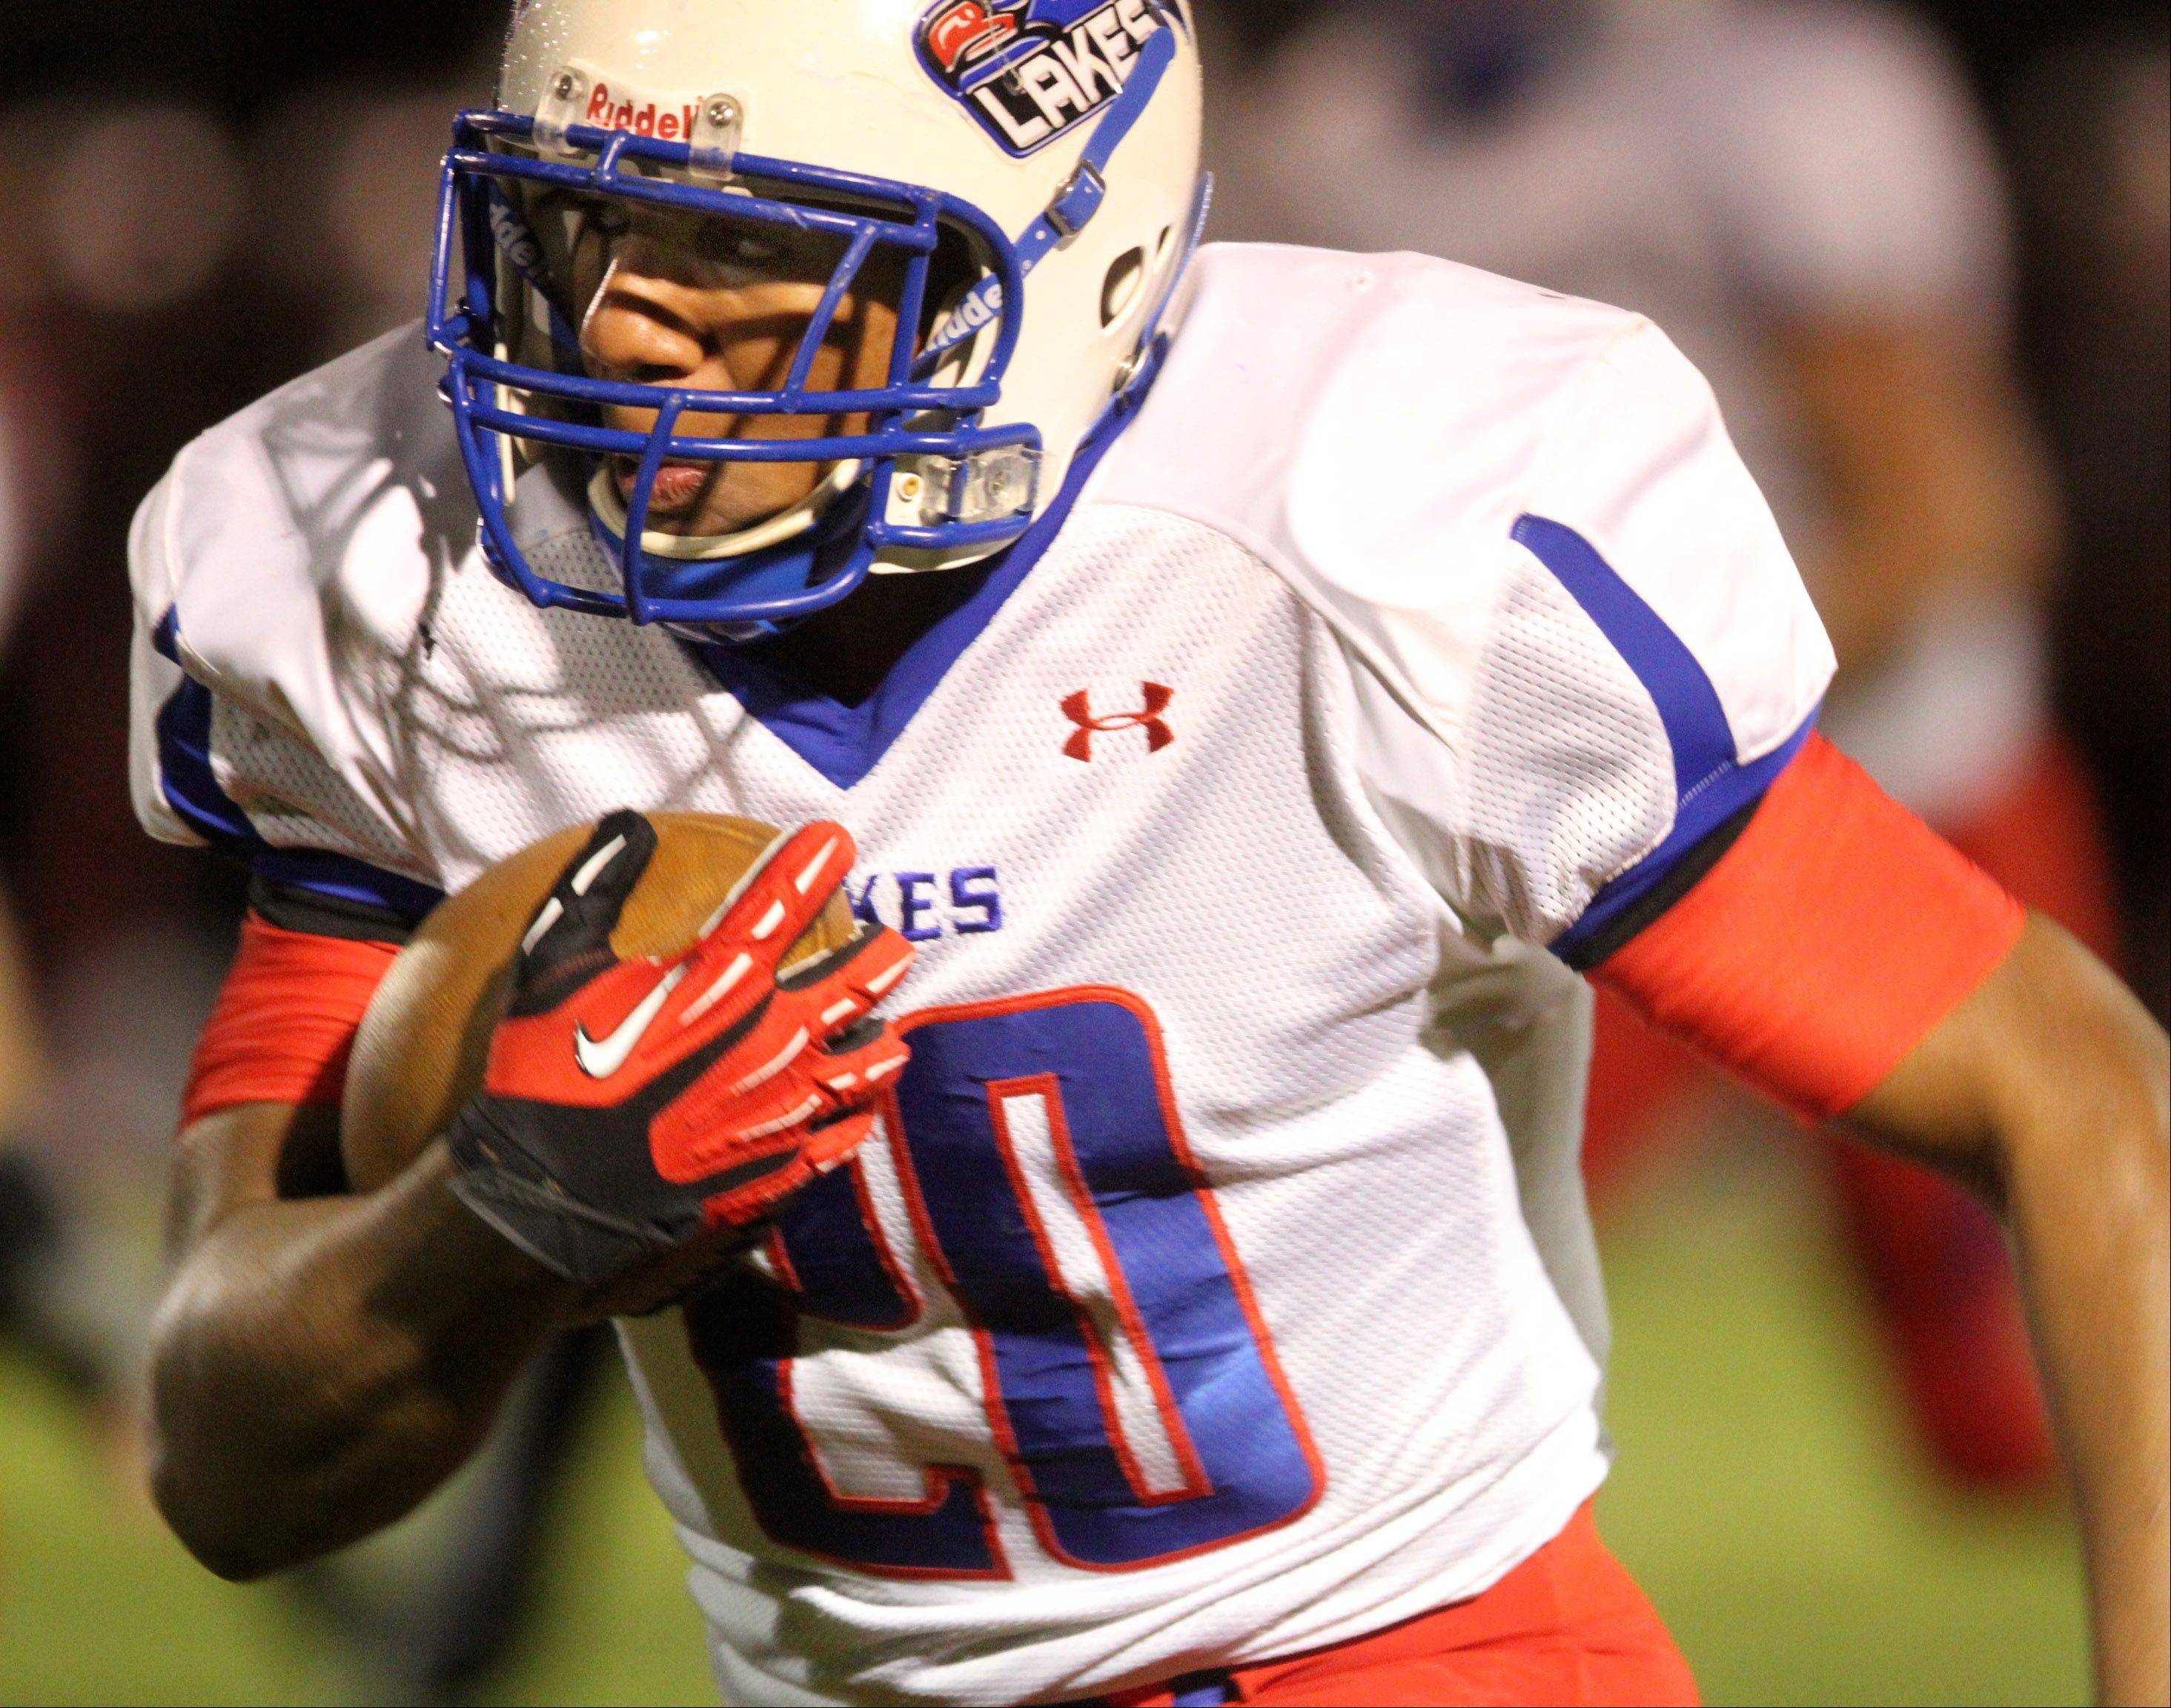 Lakes running-back Direll Clark rushes for a touchdown against Antioch Friday in Antioch.